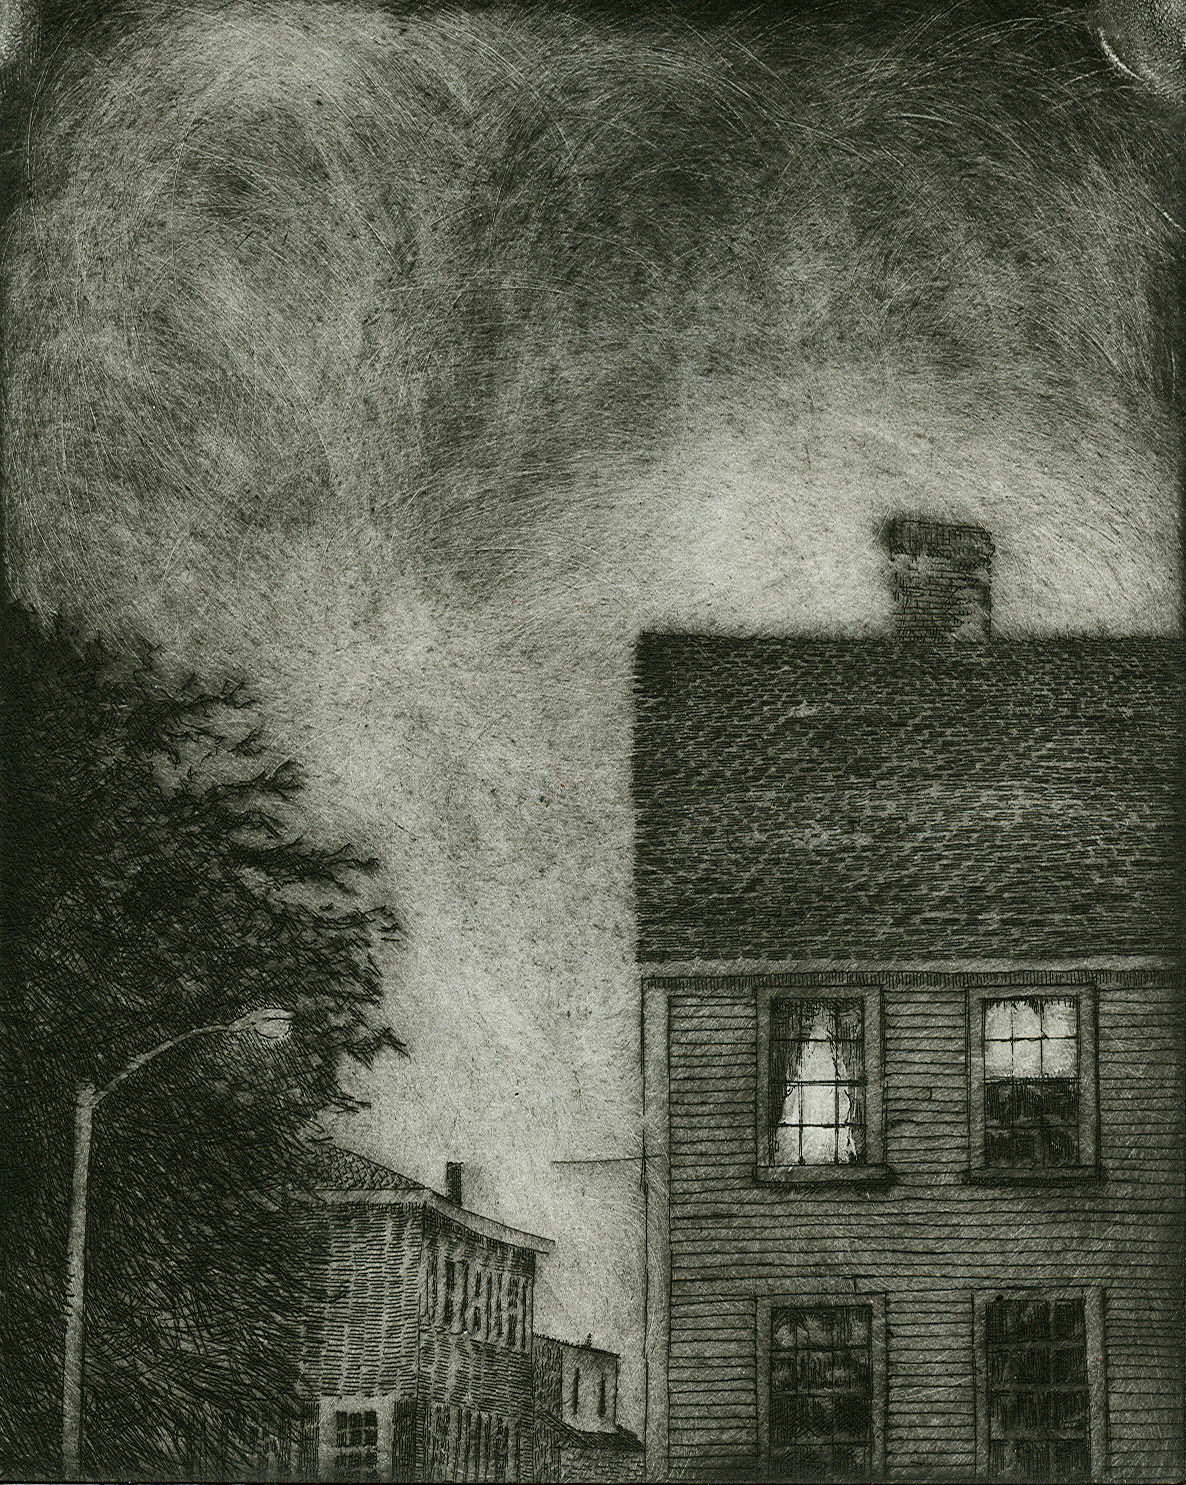 By the Warf, Etching, 6x8